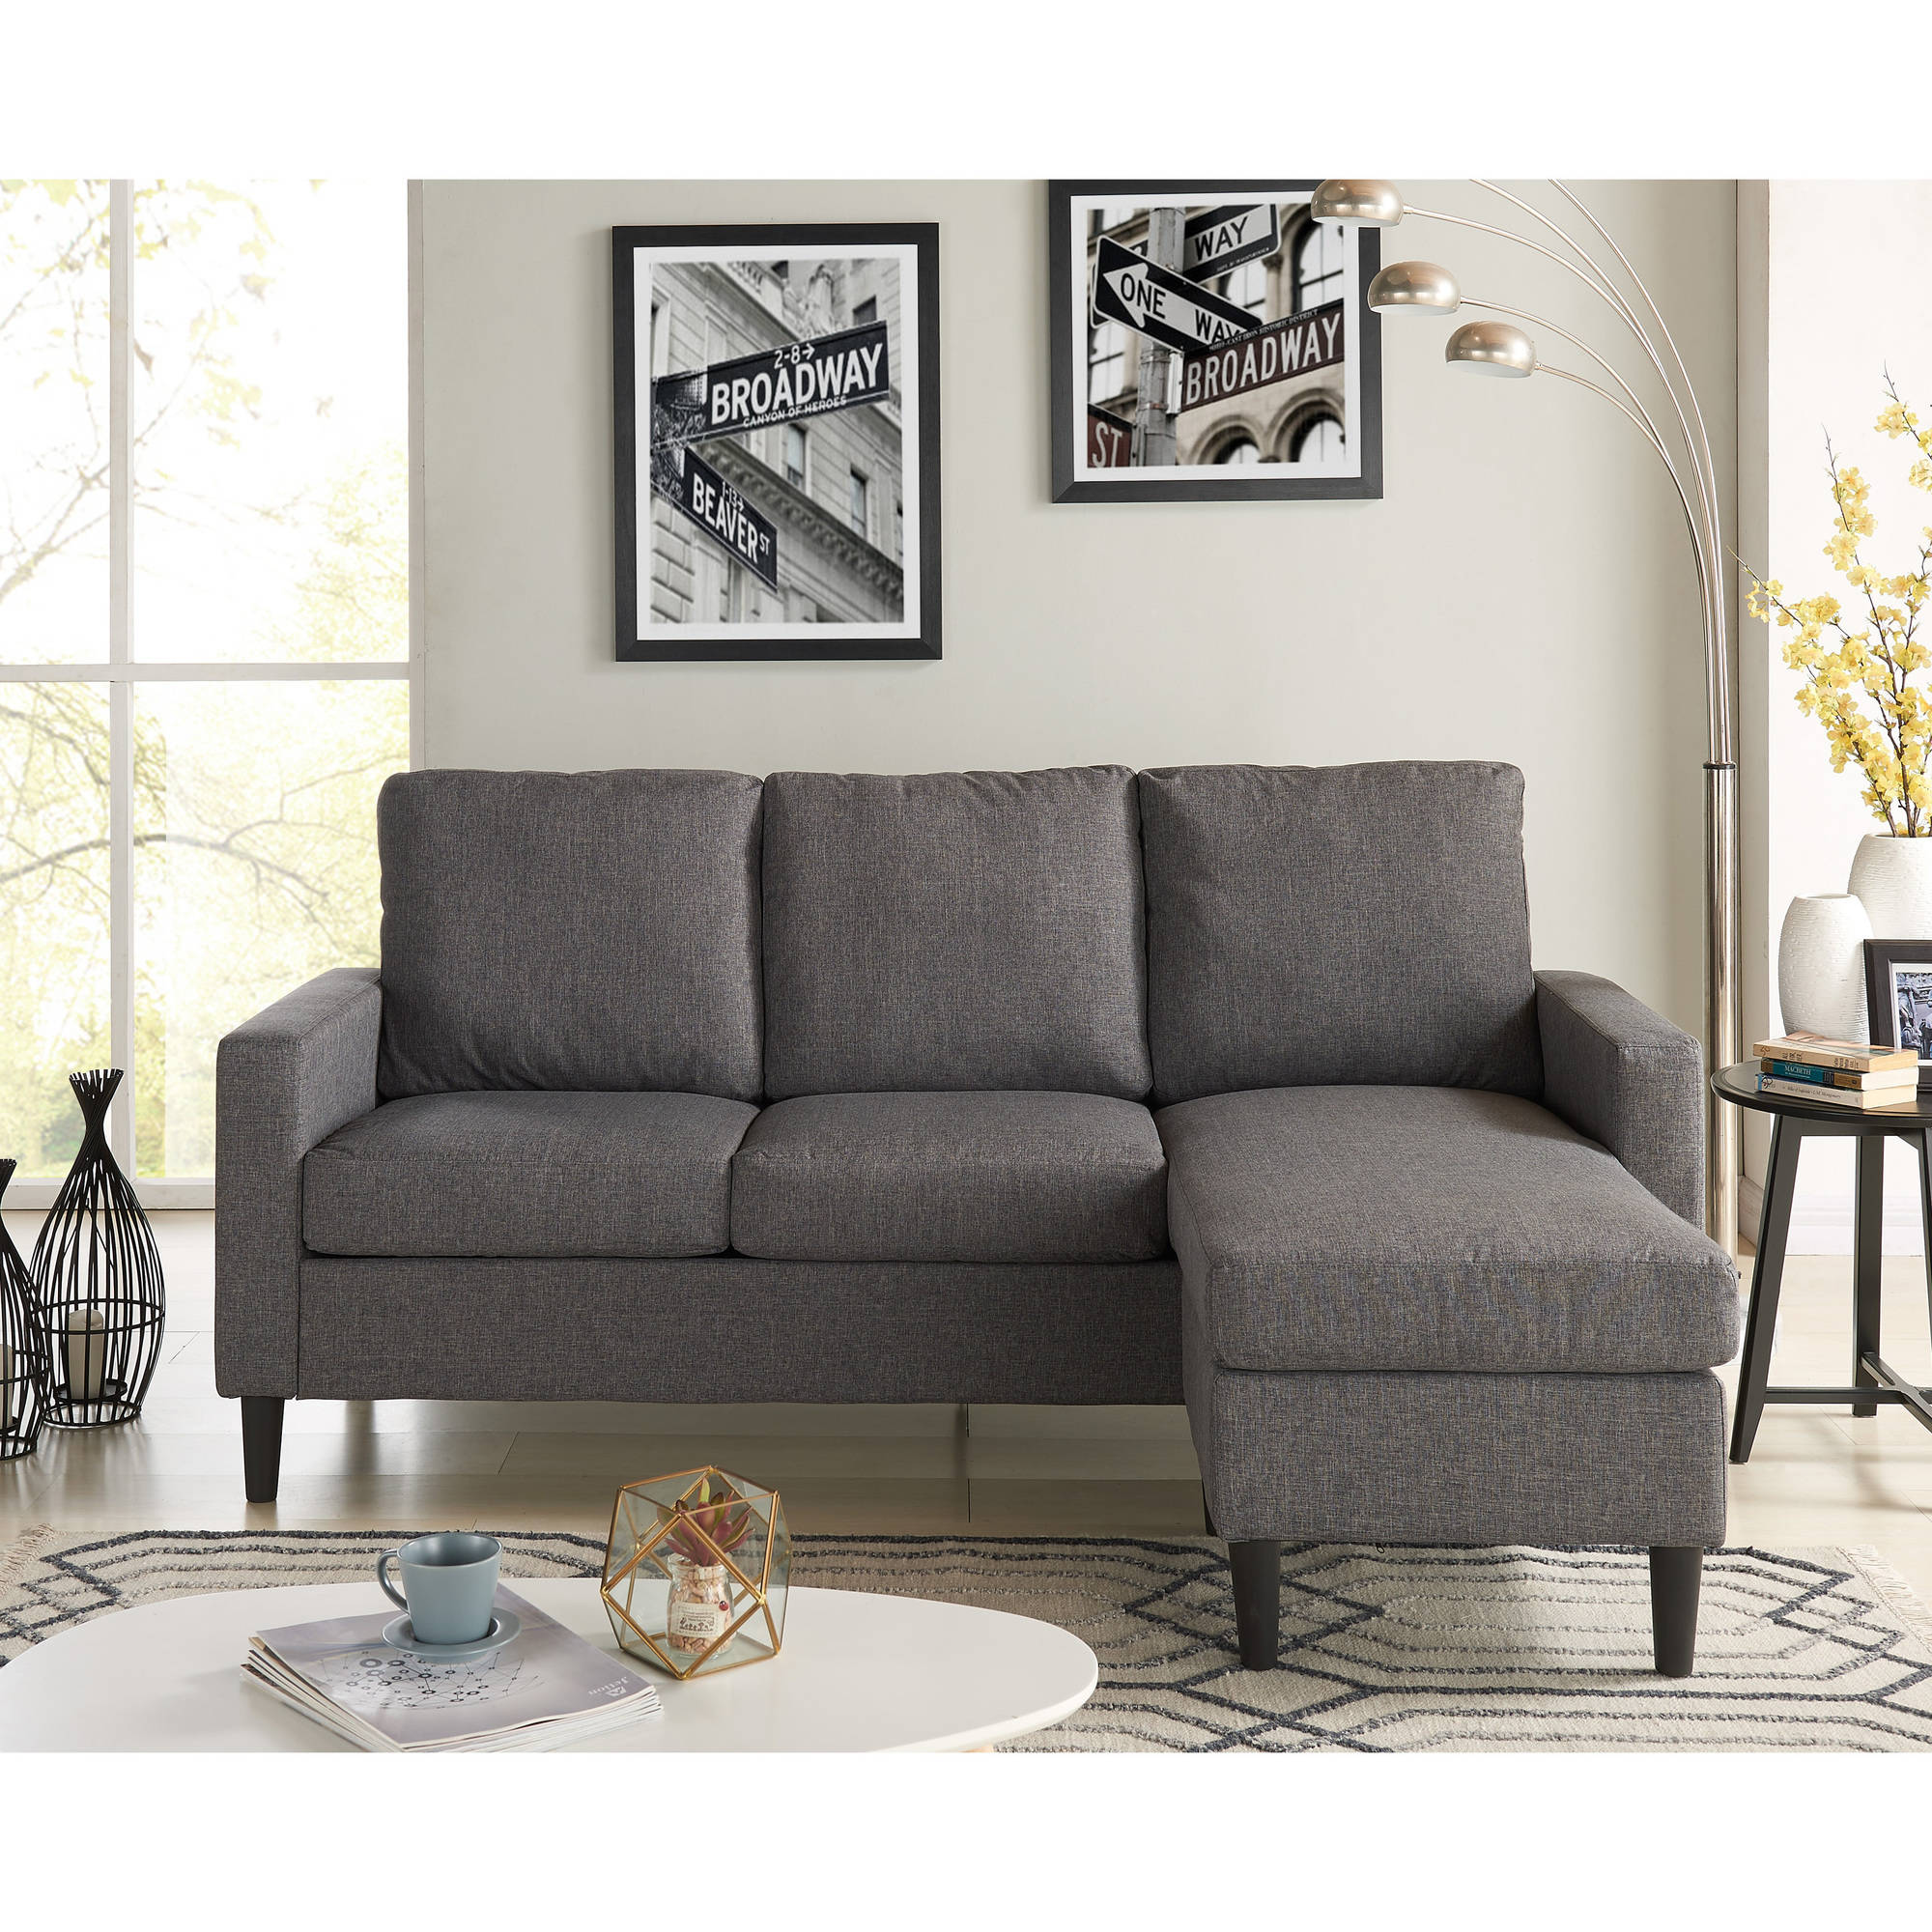 mainstays apartment reversible sectional multiple colors square accent table grey patterned armchair bunching coffee tables target leather ott summer furniture best computer desk